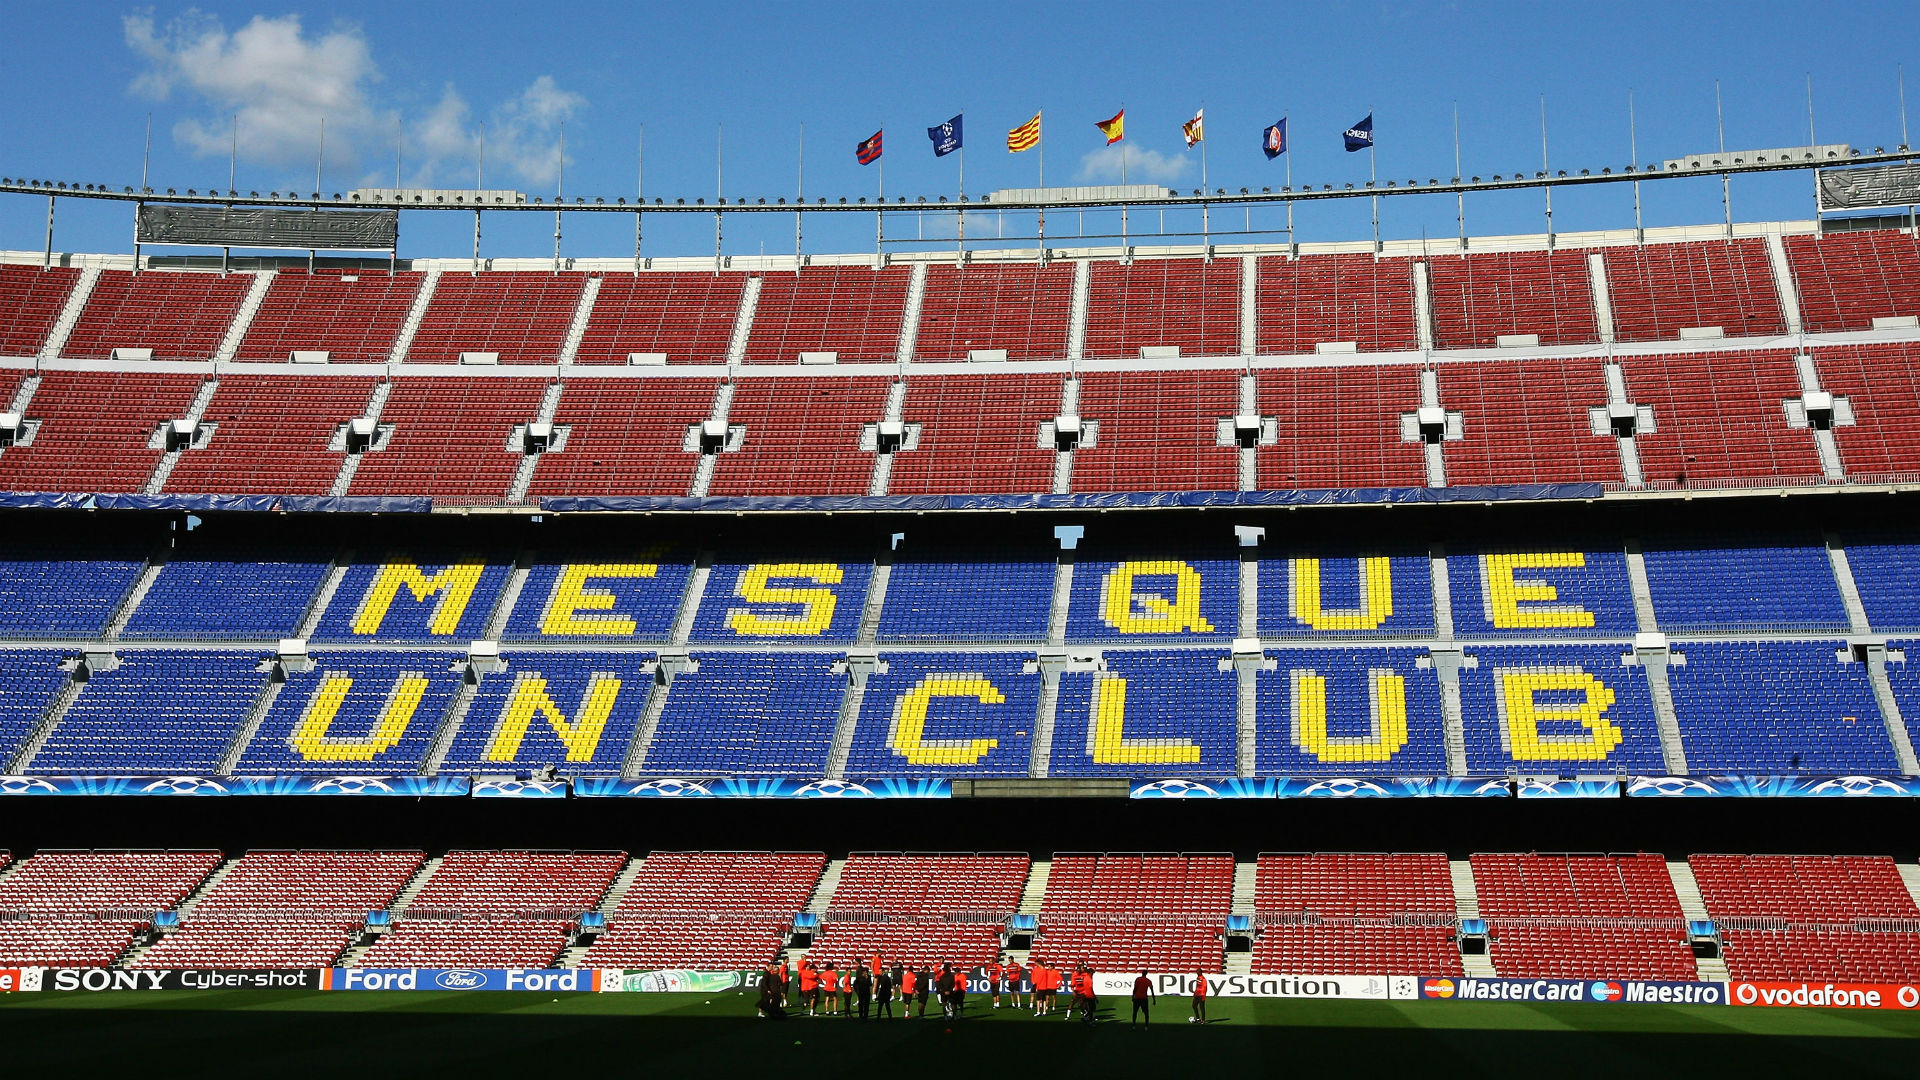 Economic bankruptcy, moral decay - Barca presidential candidate Font lambasts club